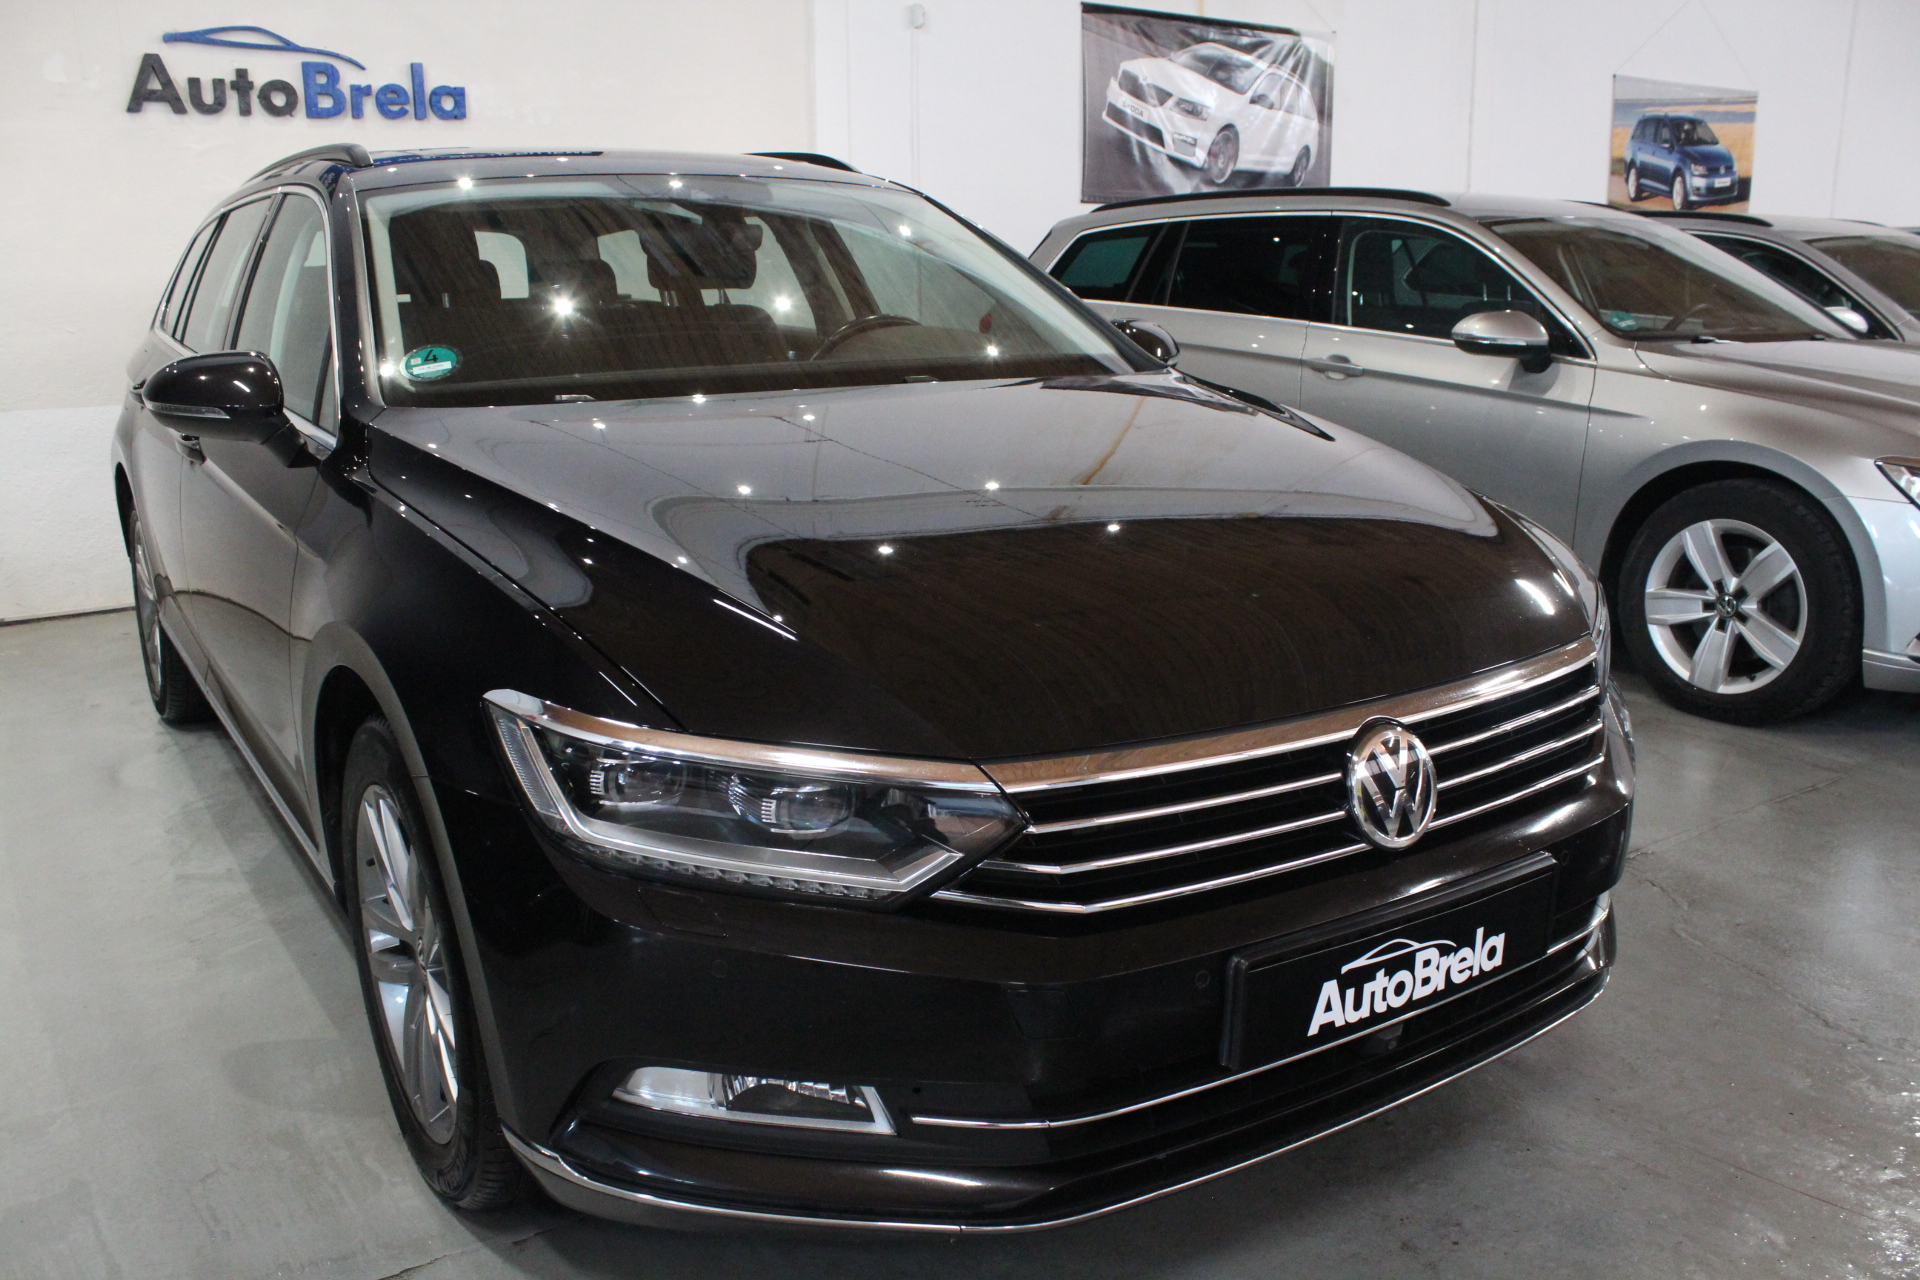 VW Passat B8 2.0 TDI DSG 140kW Highline Active Info display 12″ FULL LED  Area View 360° - AutoBrela obrázek